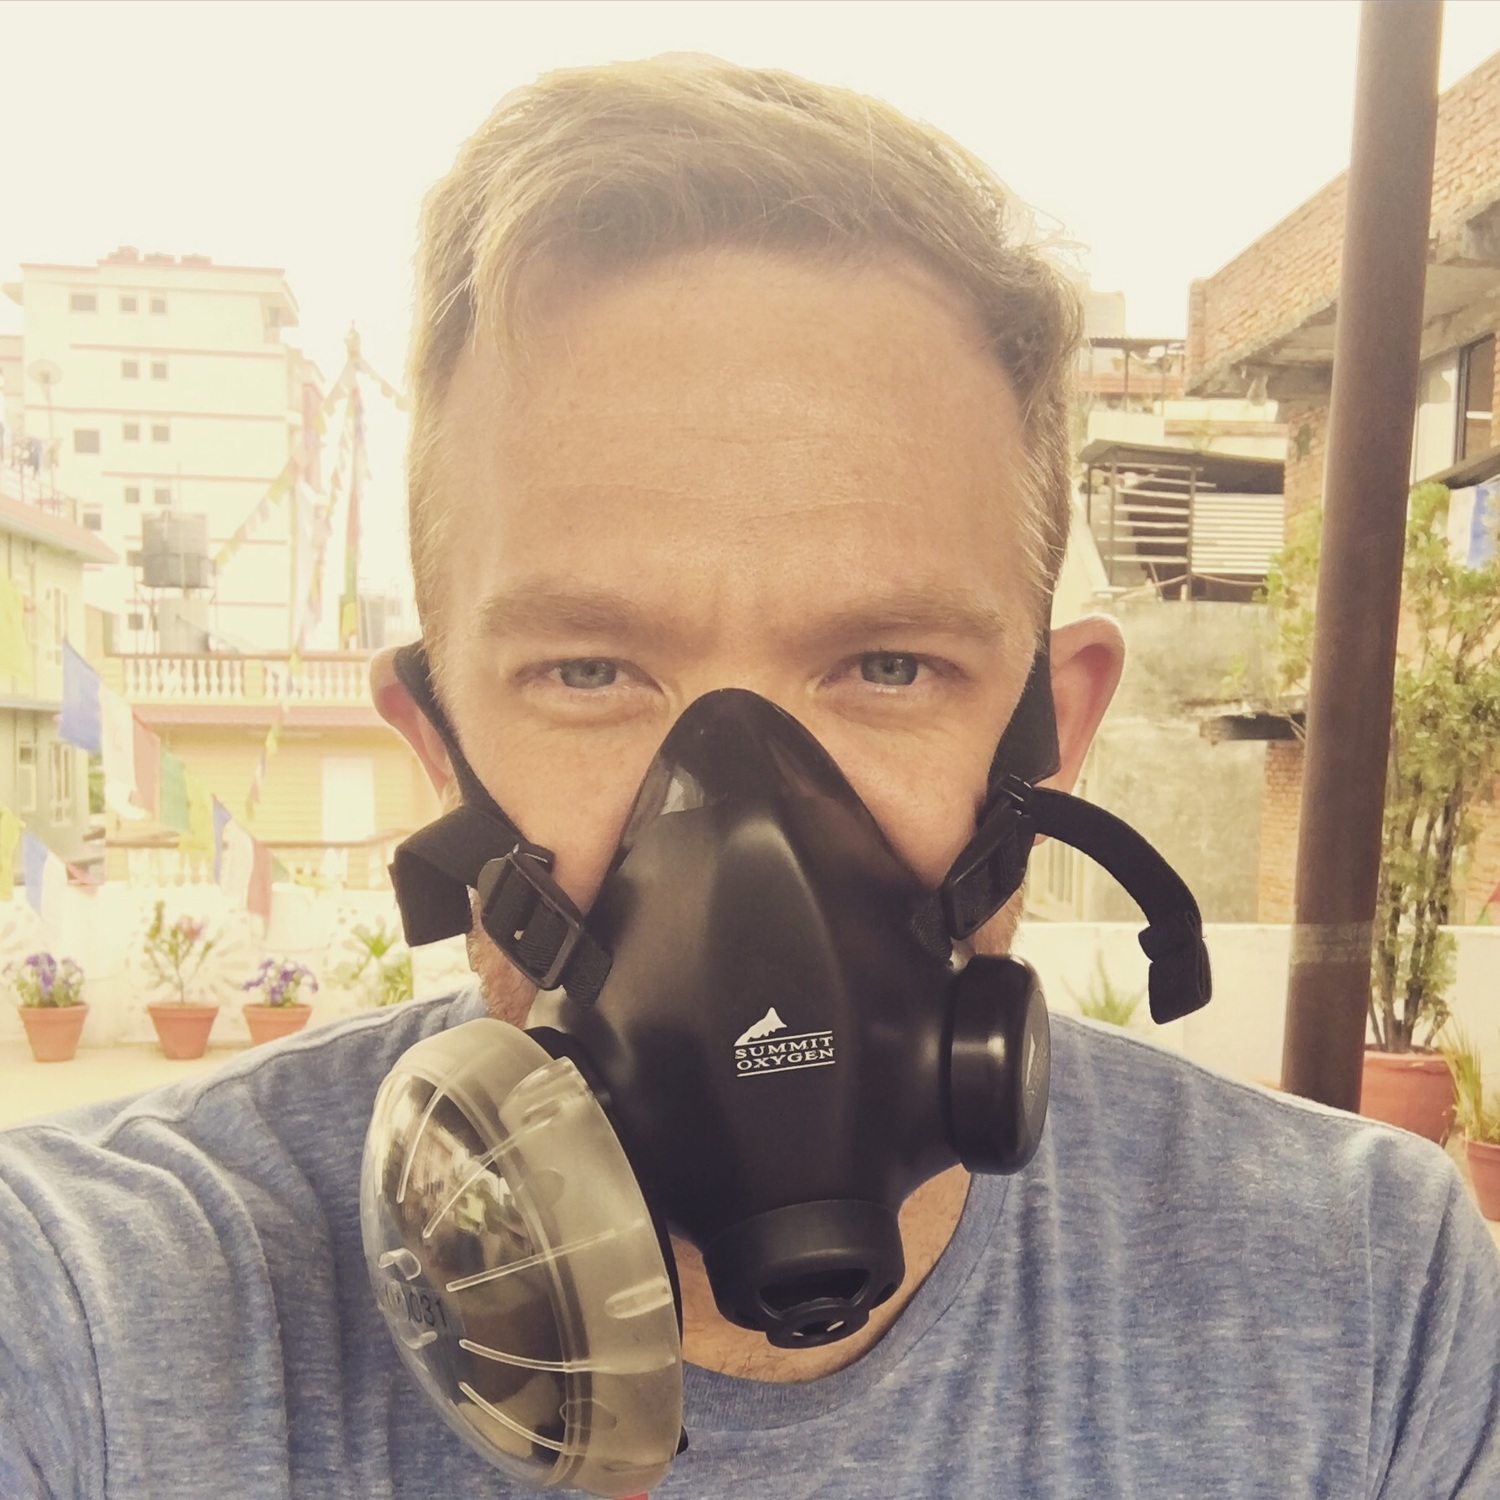 Testing out the new high altitude oxygen masks. Let's cook.